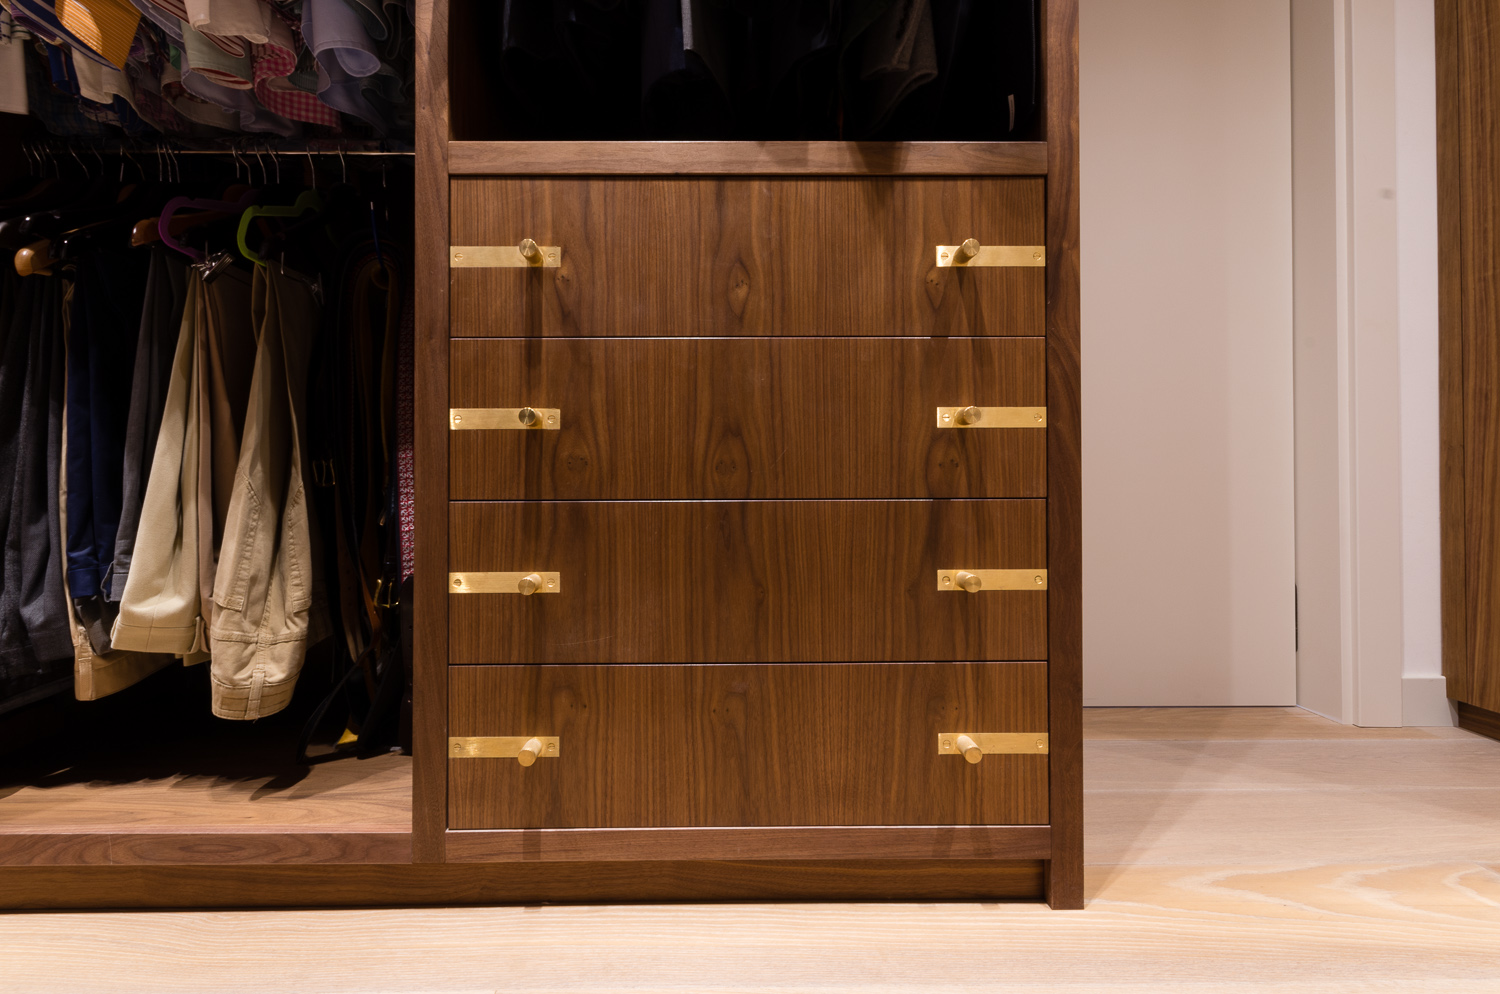 Bespoke custom furniture  - Warwick Avenue Dressing Room